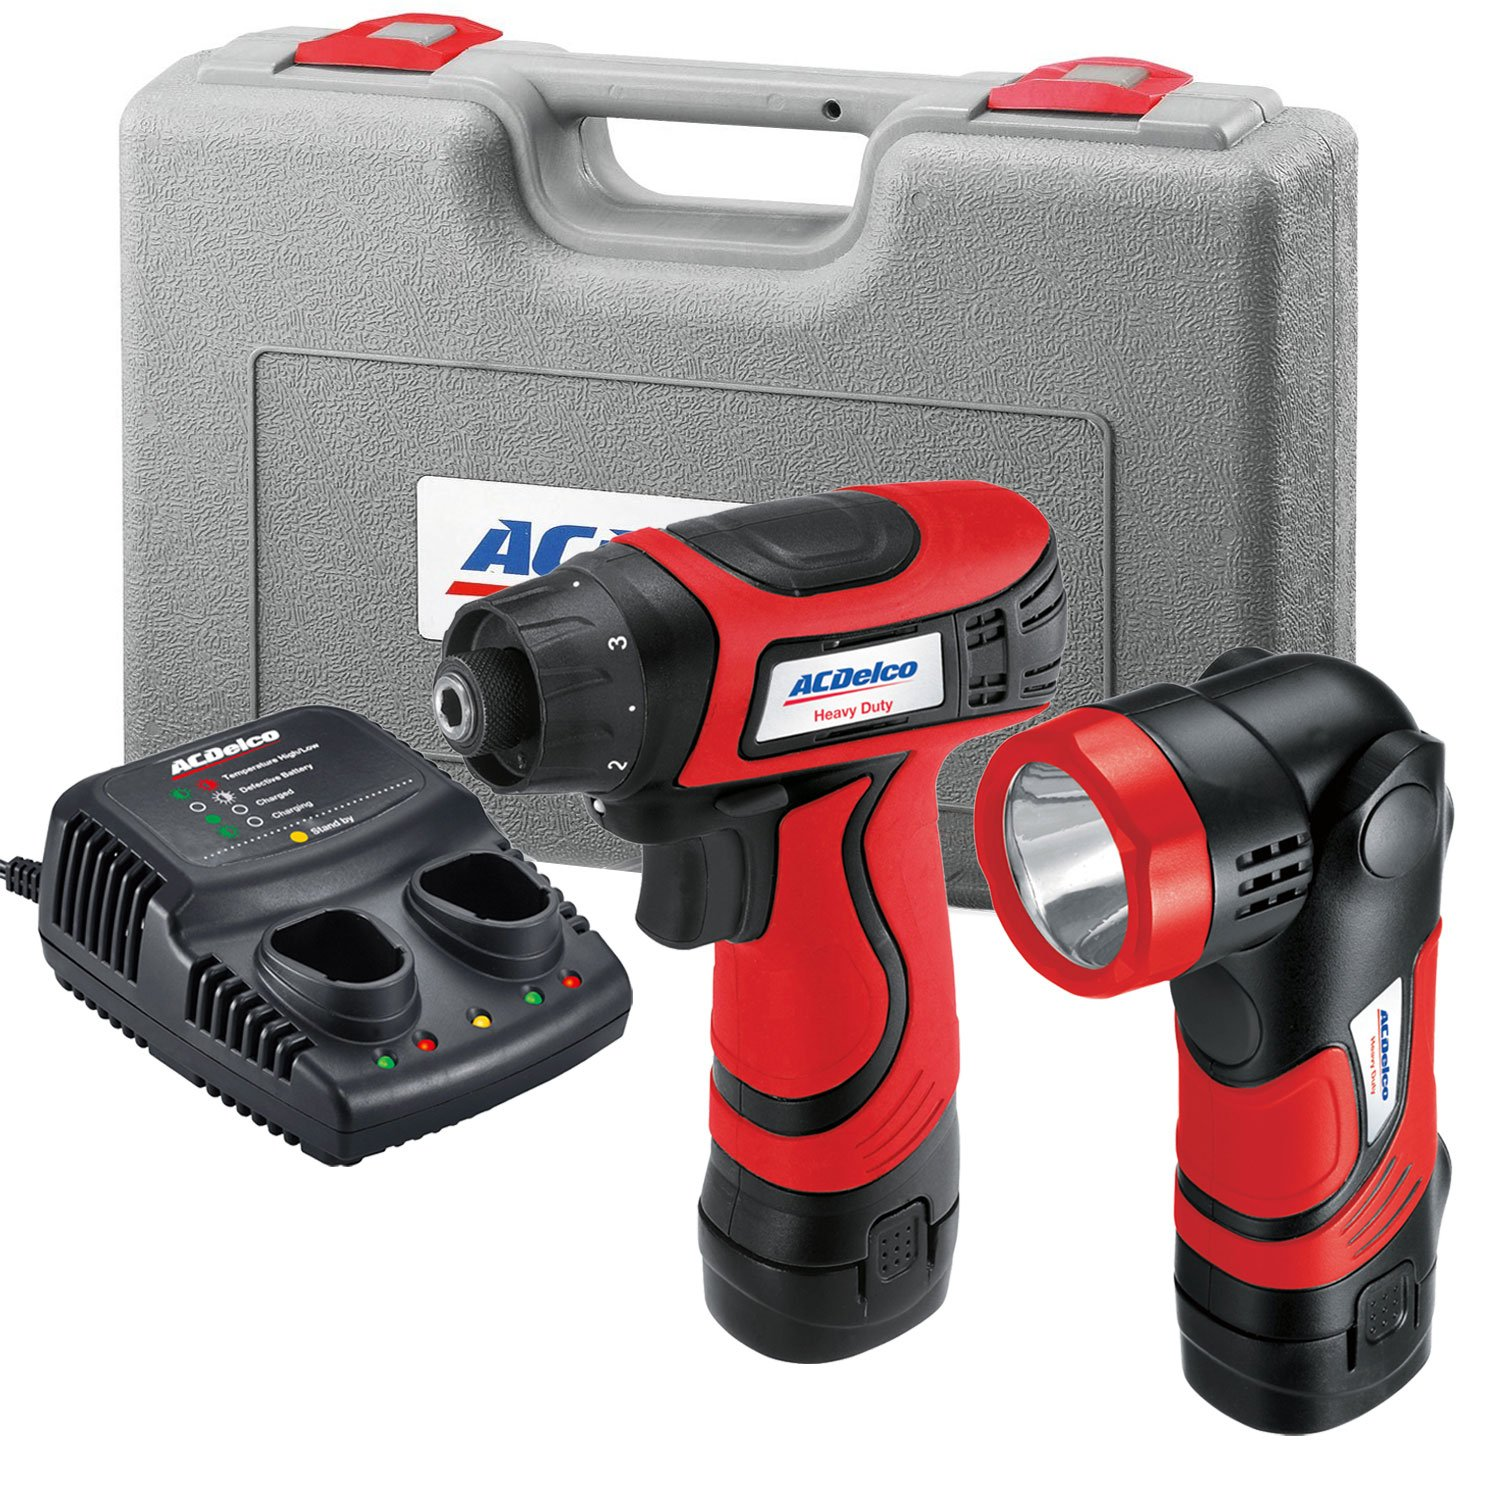 AcDelco ARD847L Cordless 8V Li-ion Drill/Driver Set Combo Kit with Case, LED Work Light, 2-Port Charger, and 2 Batteries